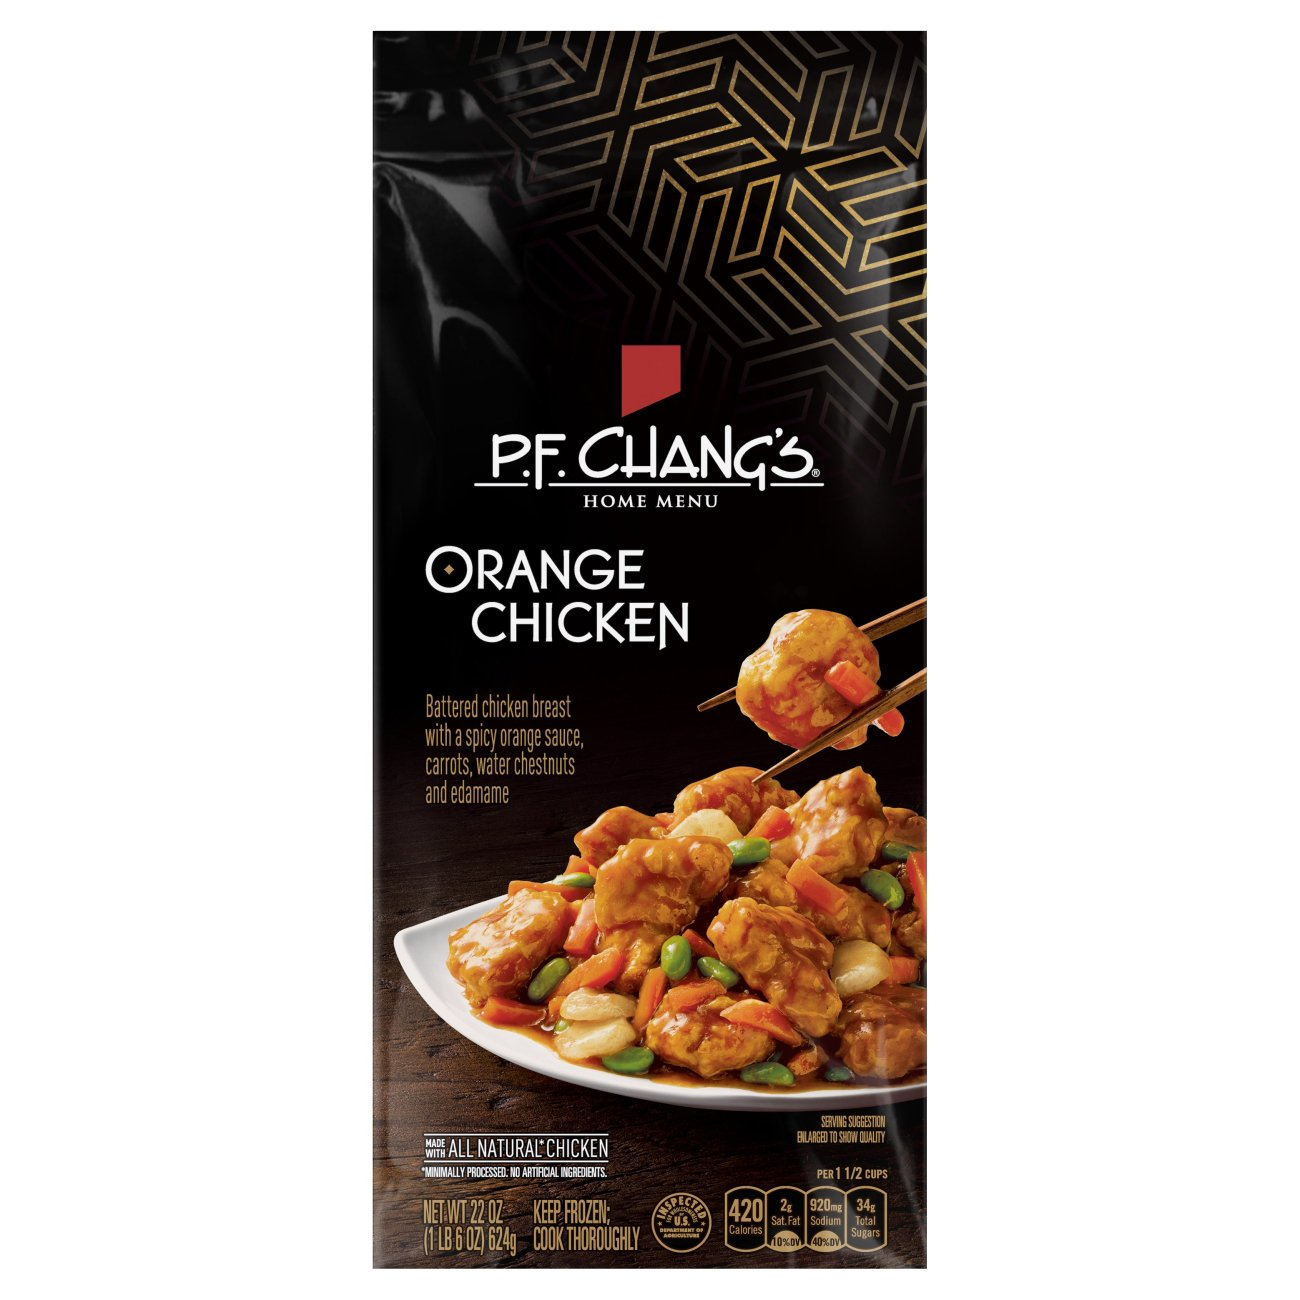 P F Chang S Home Menu Orange Chicken Shop Entrees Sides At H E B